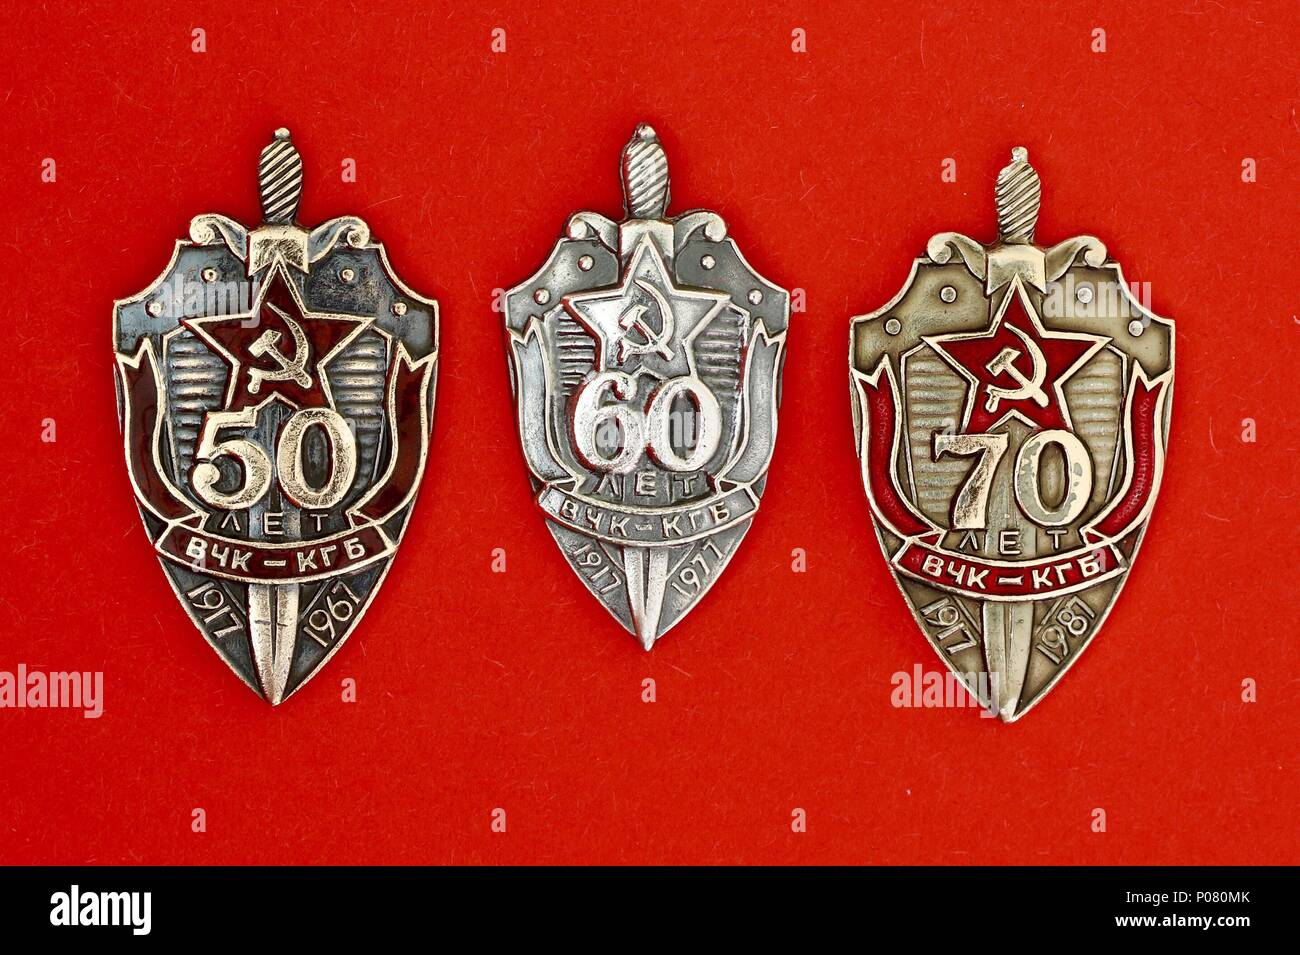 Three Russian KGB  badges commemorating 50, 60 and 70 years anniversaries. - Stock Image